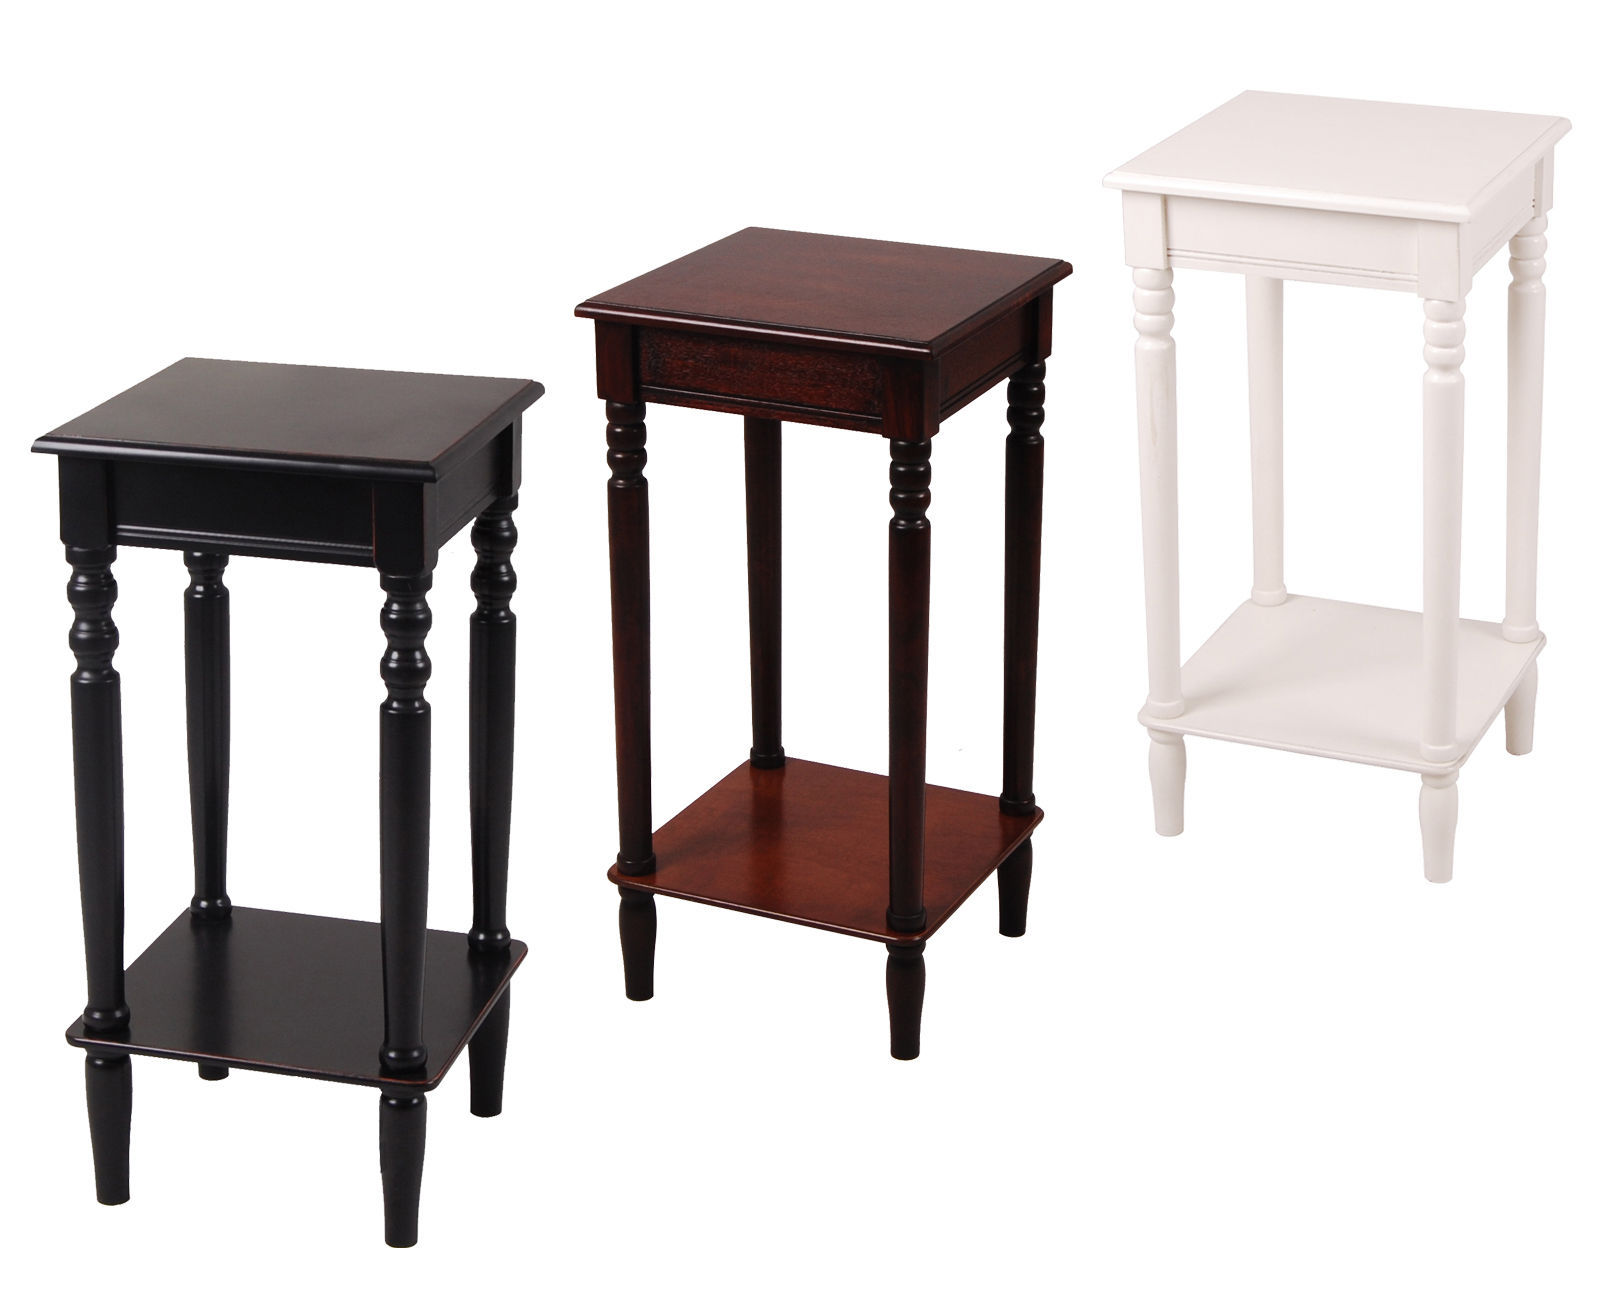 Wood Side Tables With Storage ~ Urbanest solid wood square accent side end table with